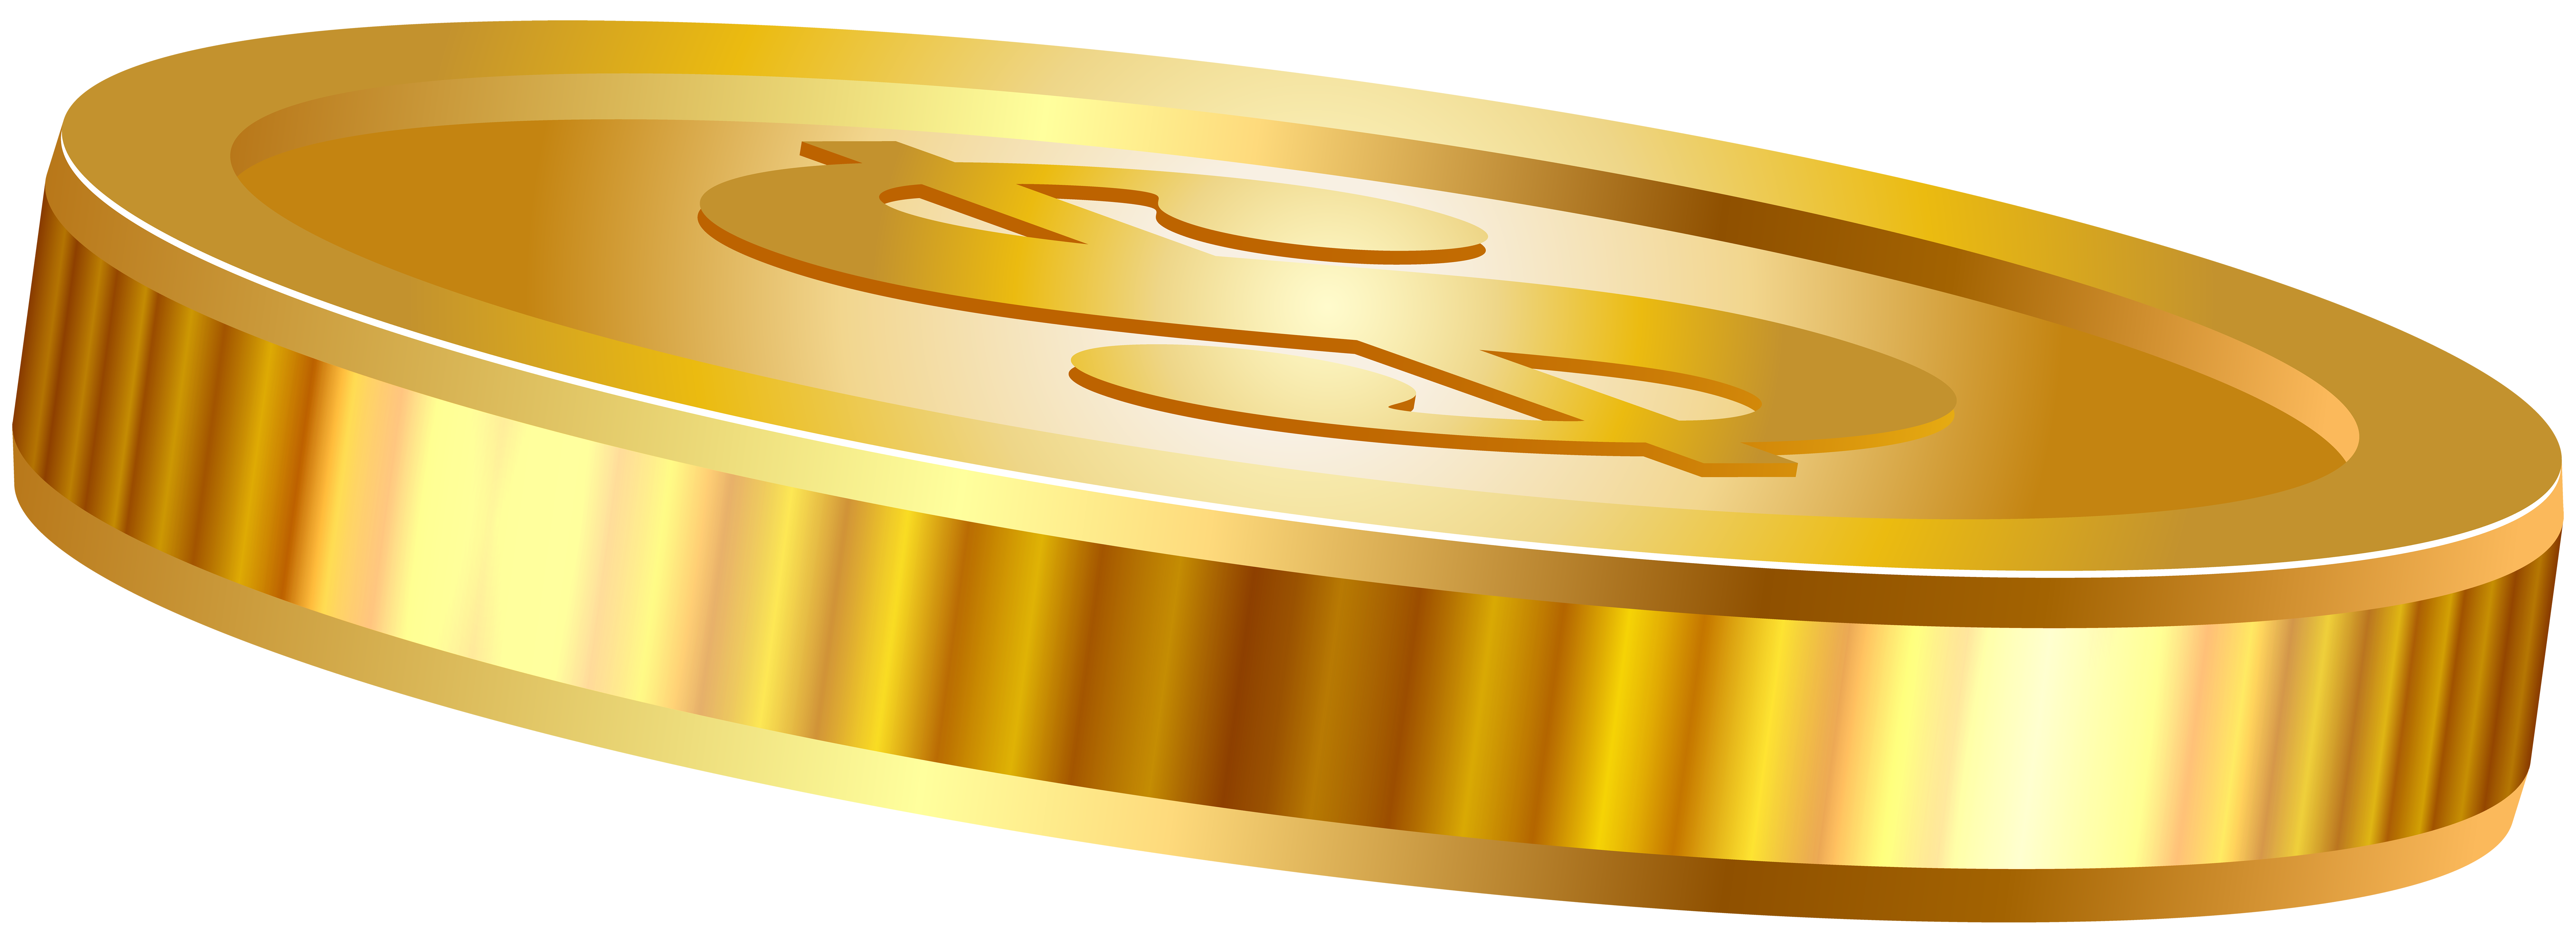 Coin clipart real gold. Transparent png clip art